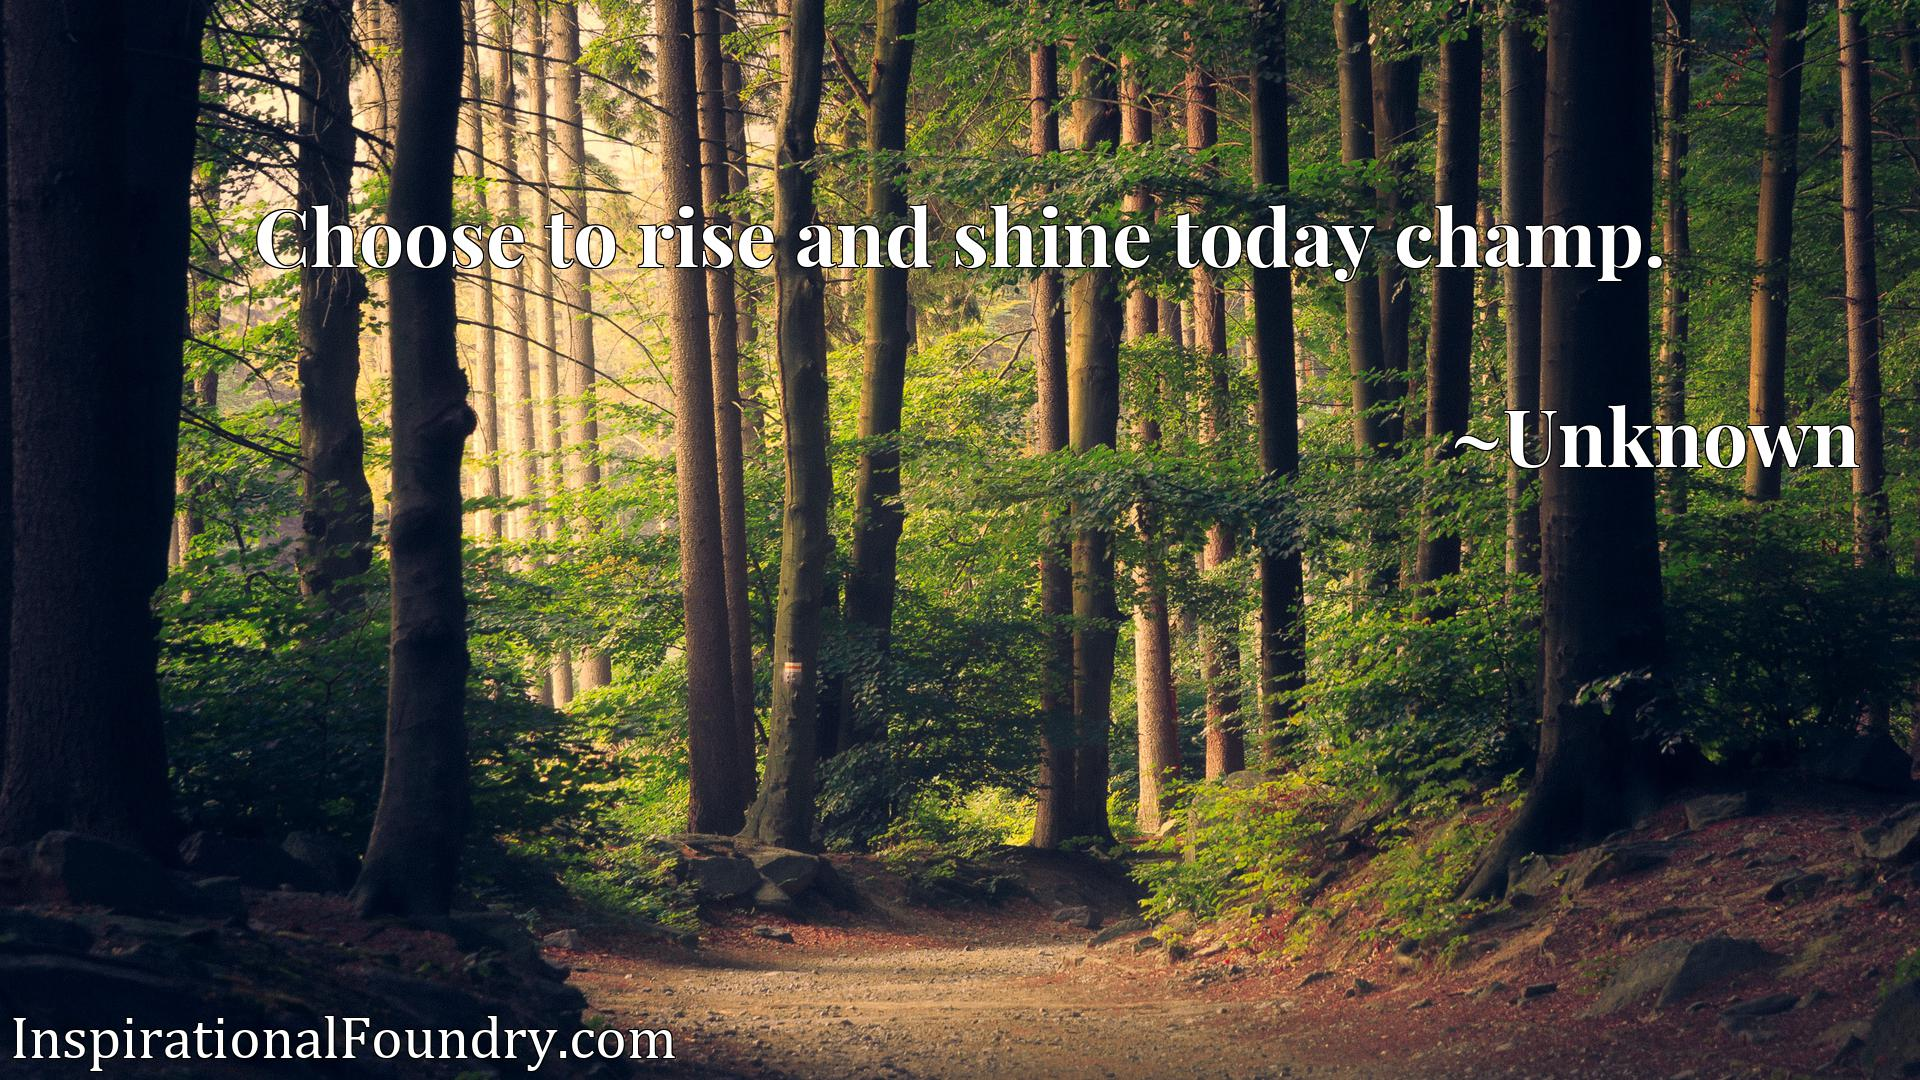 Quote Picture :Choose to rise and shine today champ.